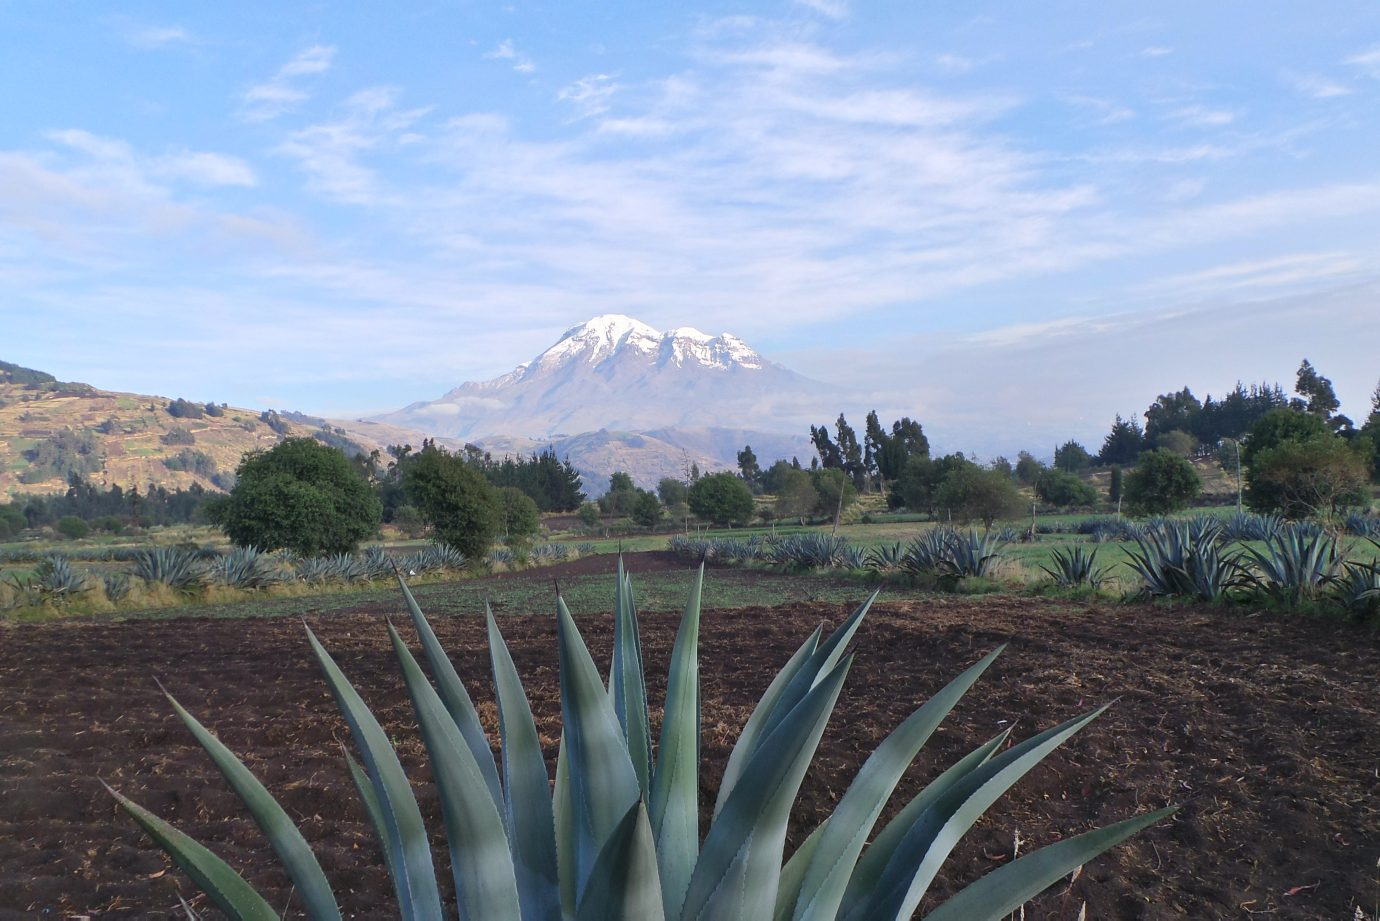 Agave tree standing in front of Chimborazo volcano